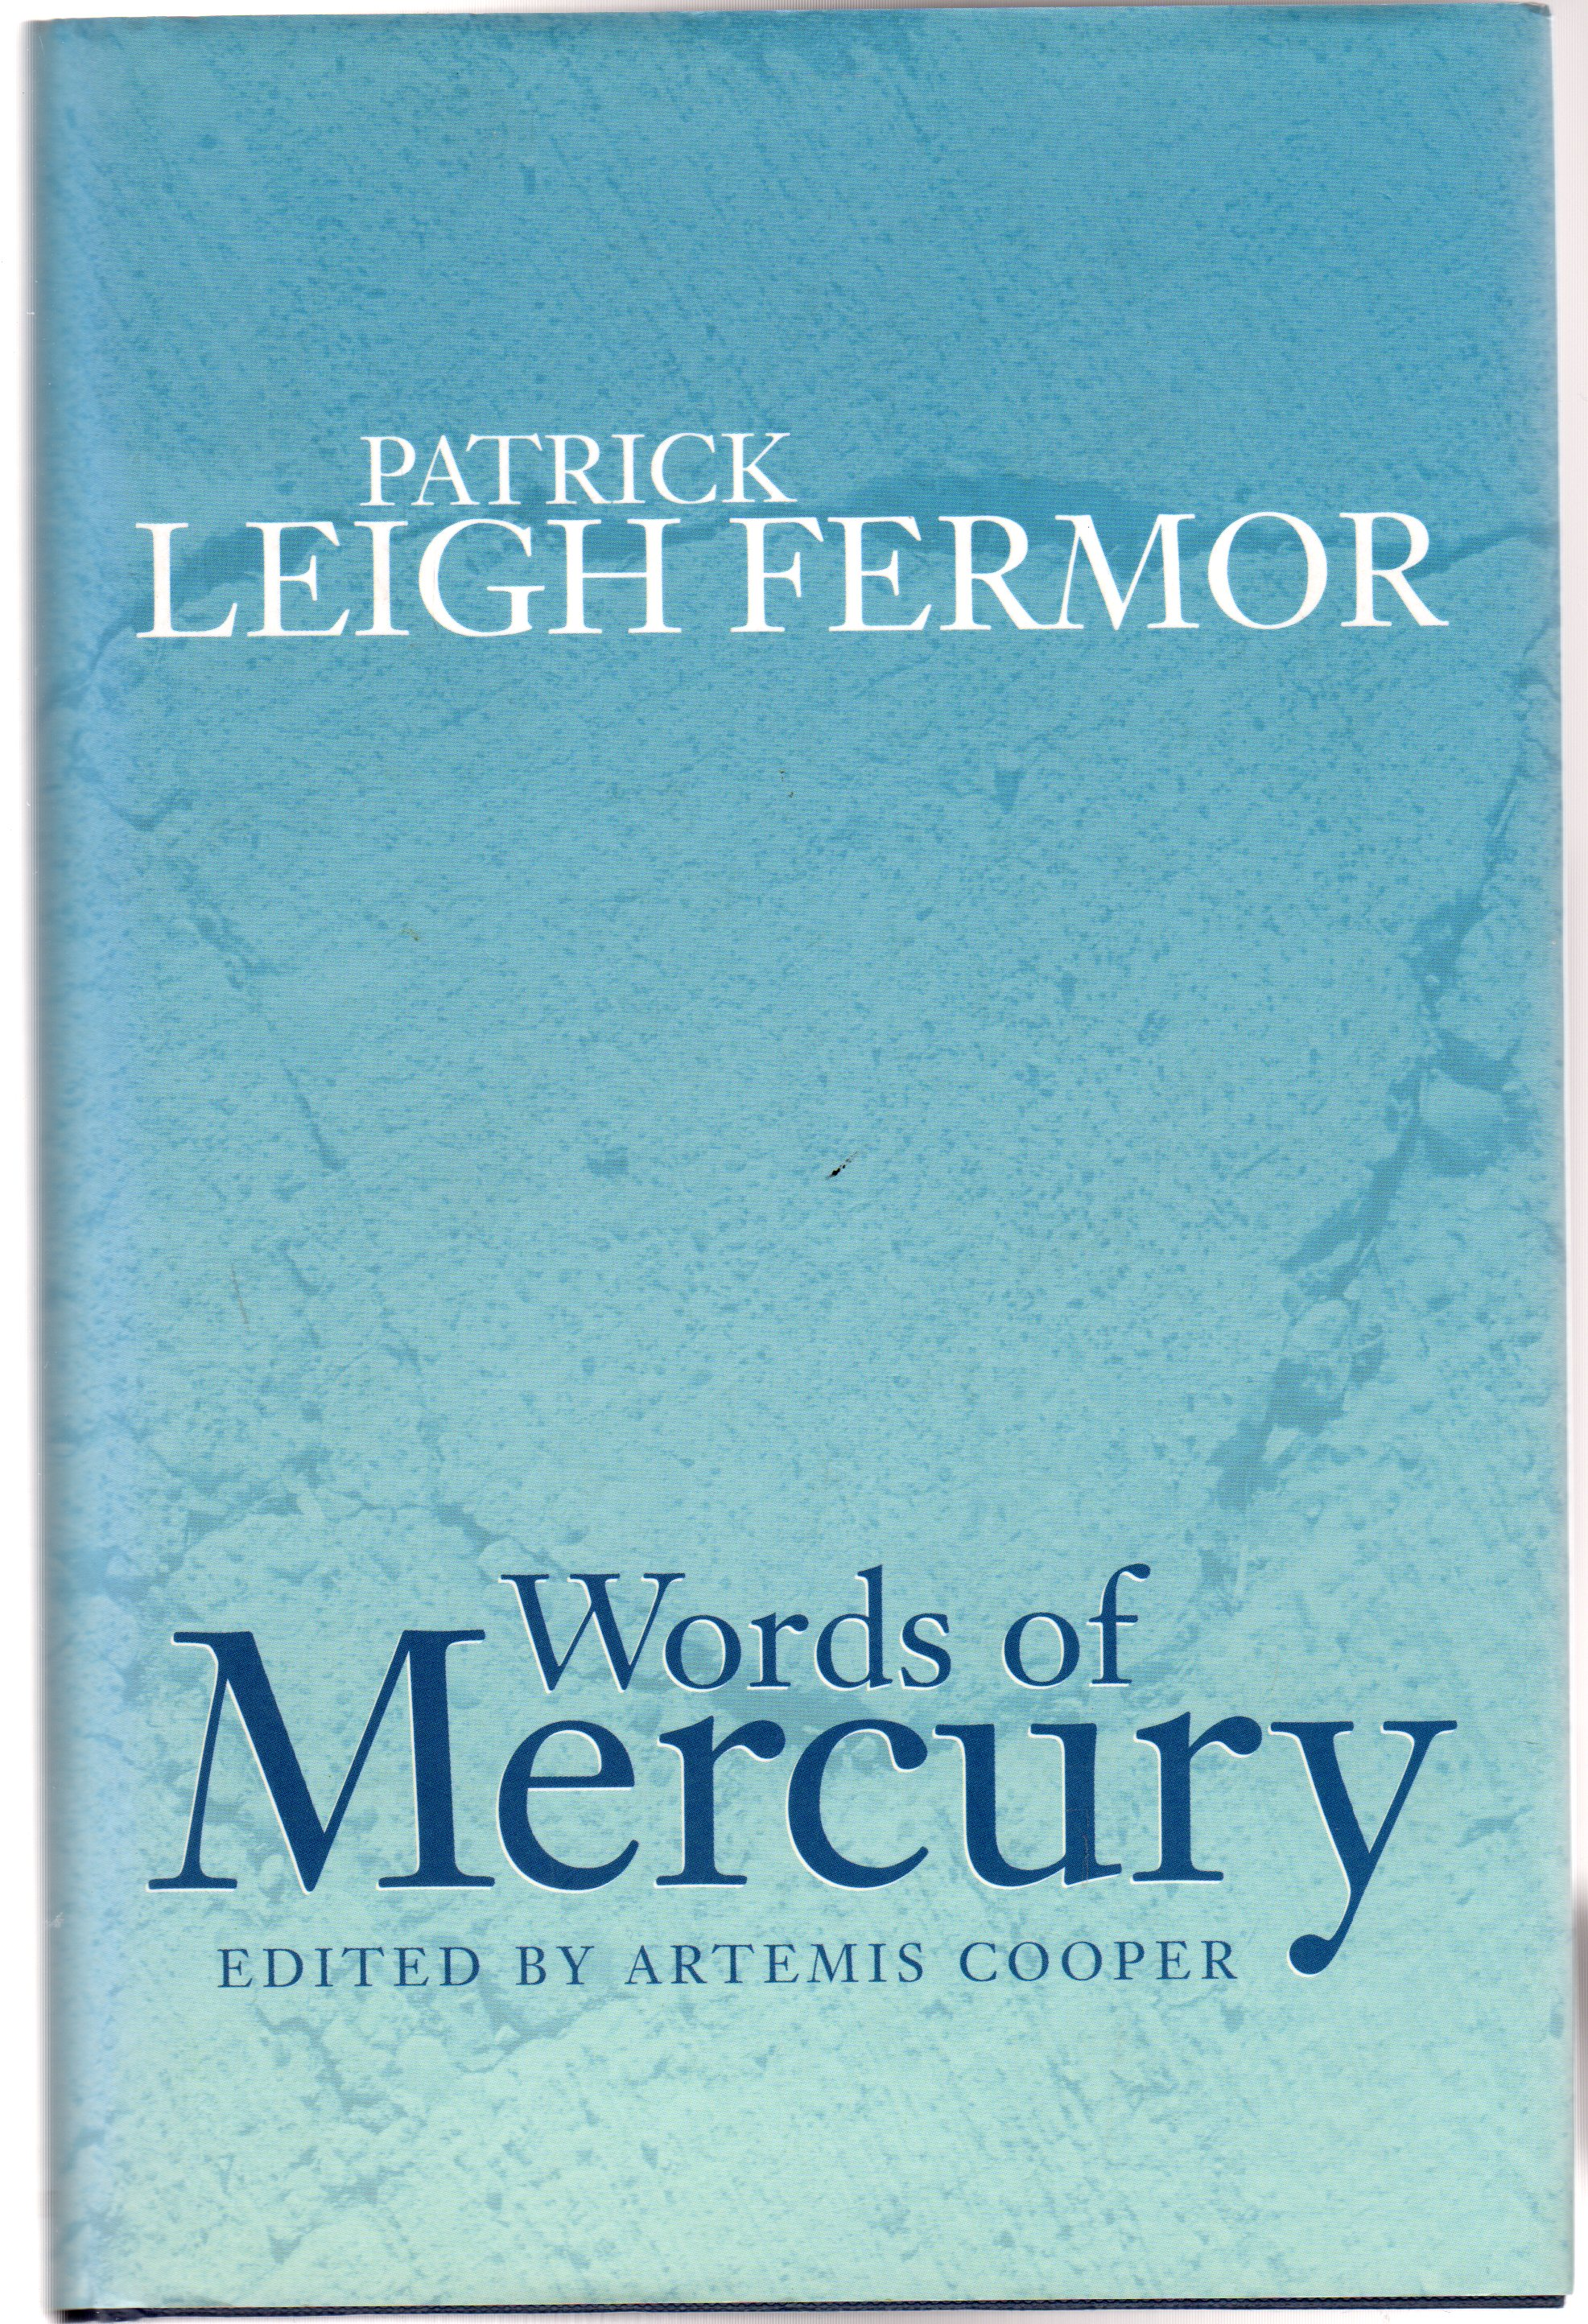 Image for Words of Mercury - SIGNED COPY